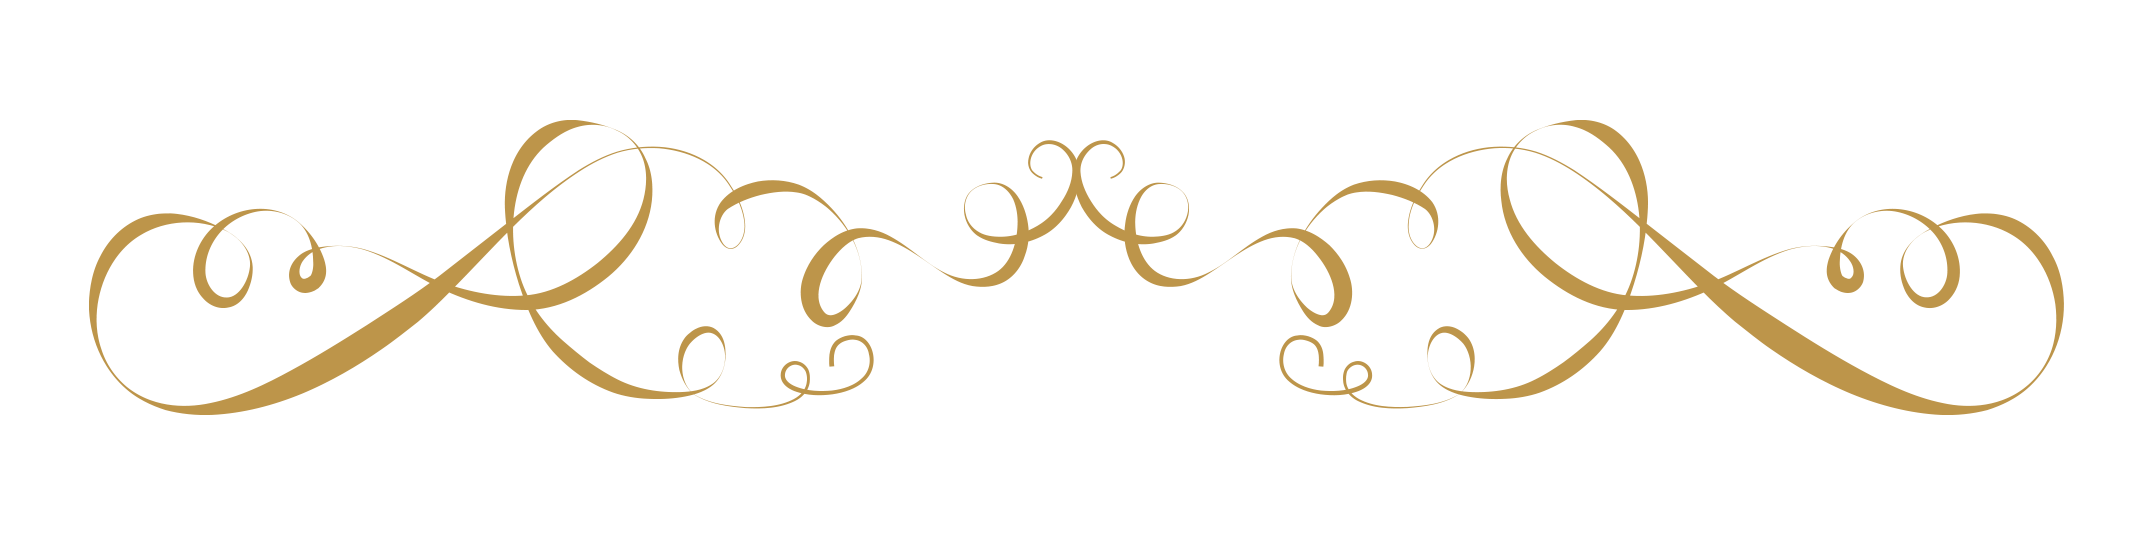 Rustic clipart. Borders png hd image